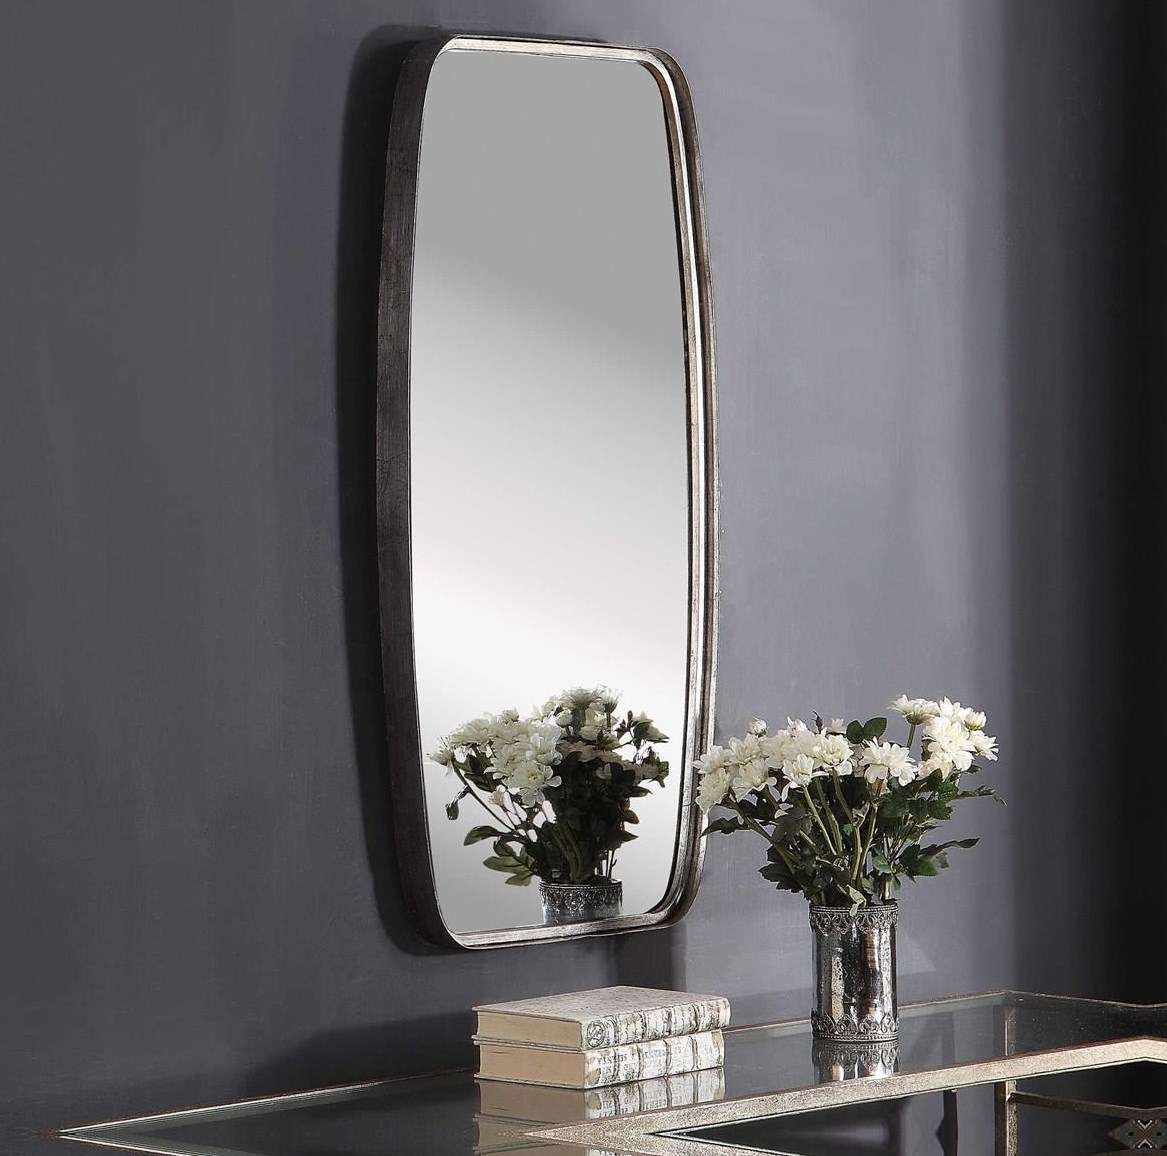 Mirrors HANNAH WALL MIRROR by Unique at Walker's Furniture